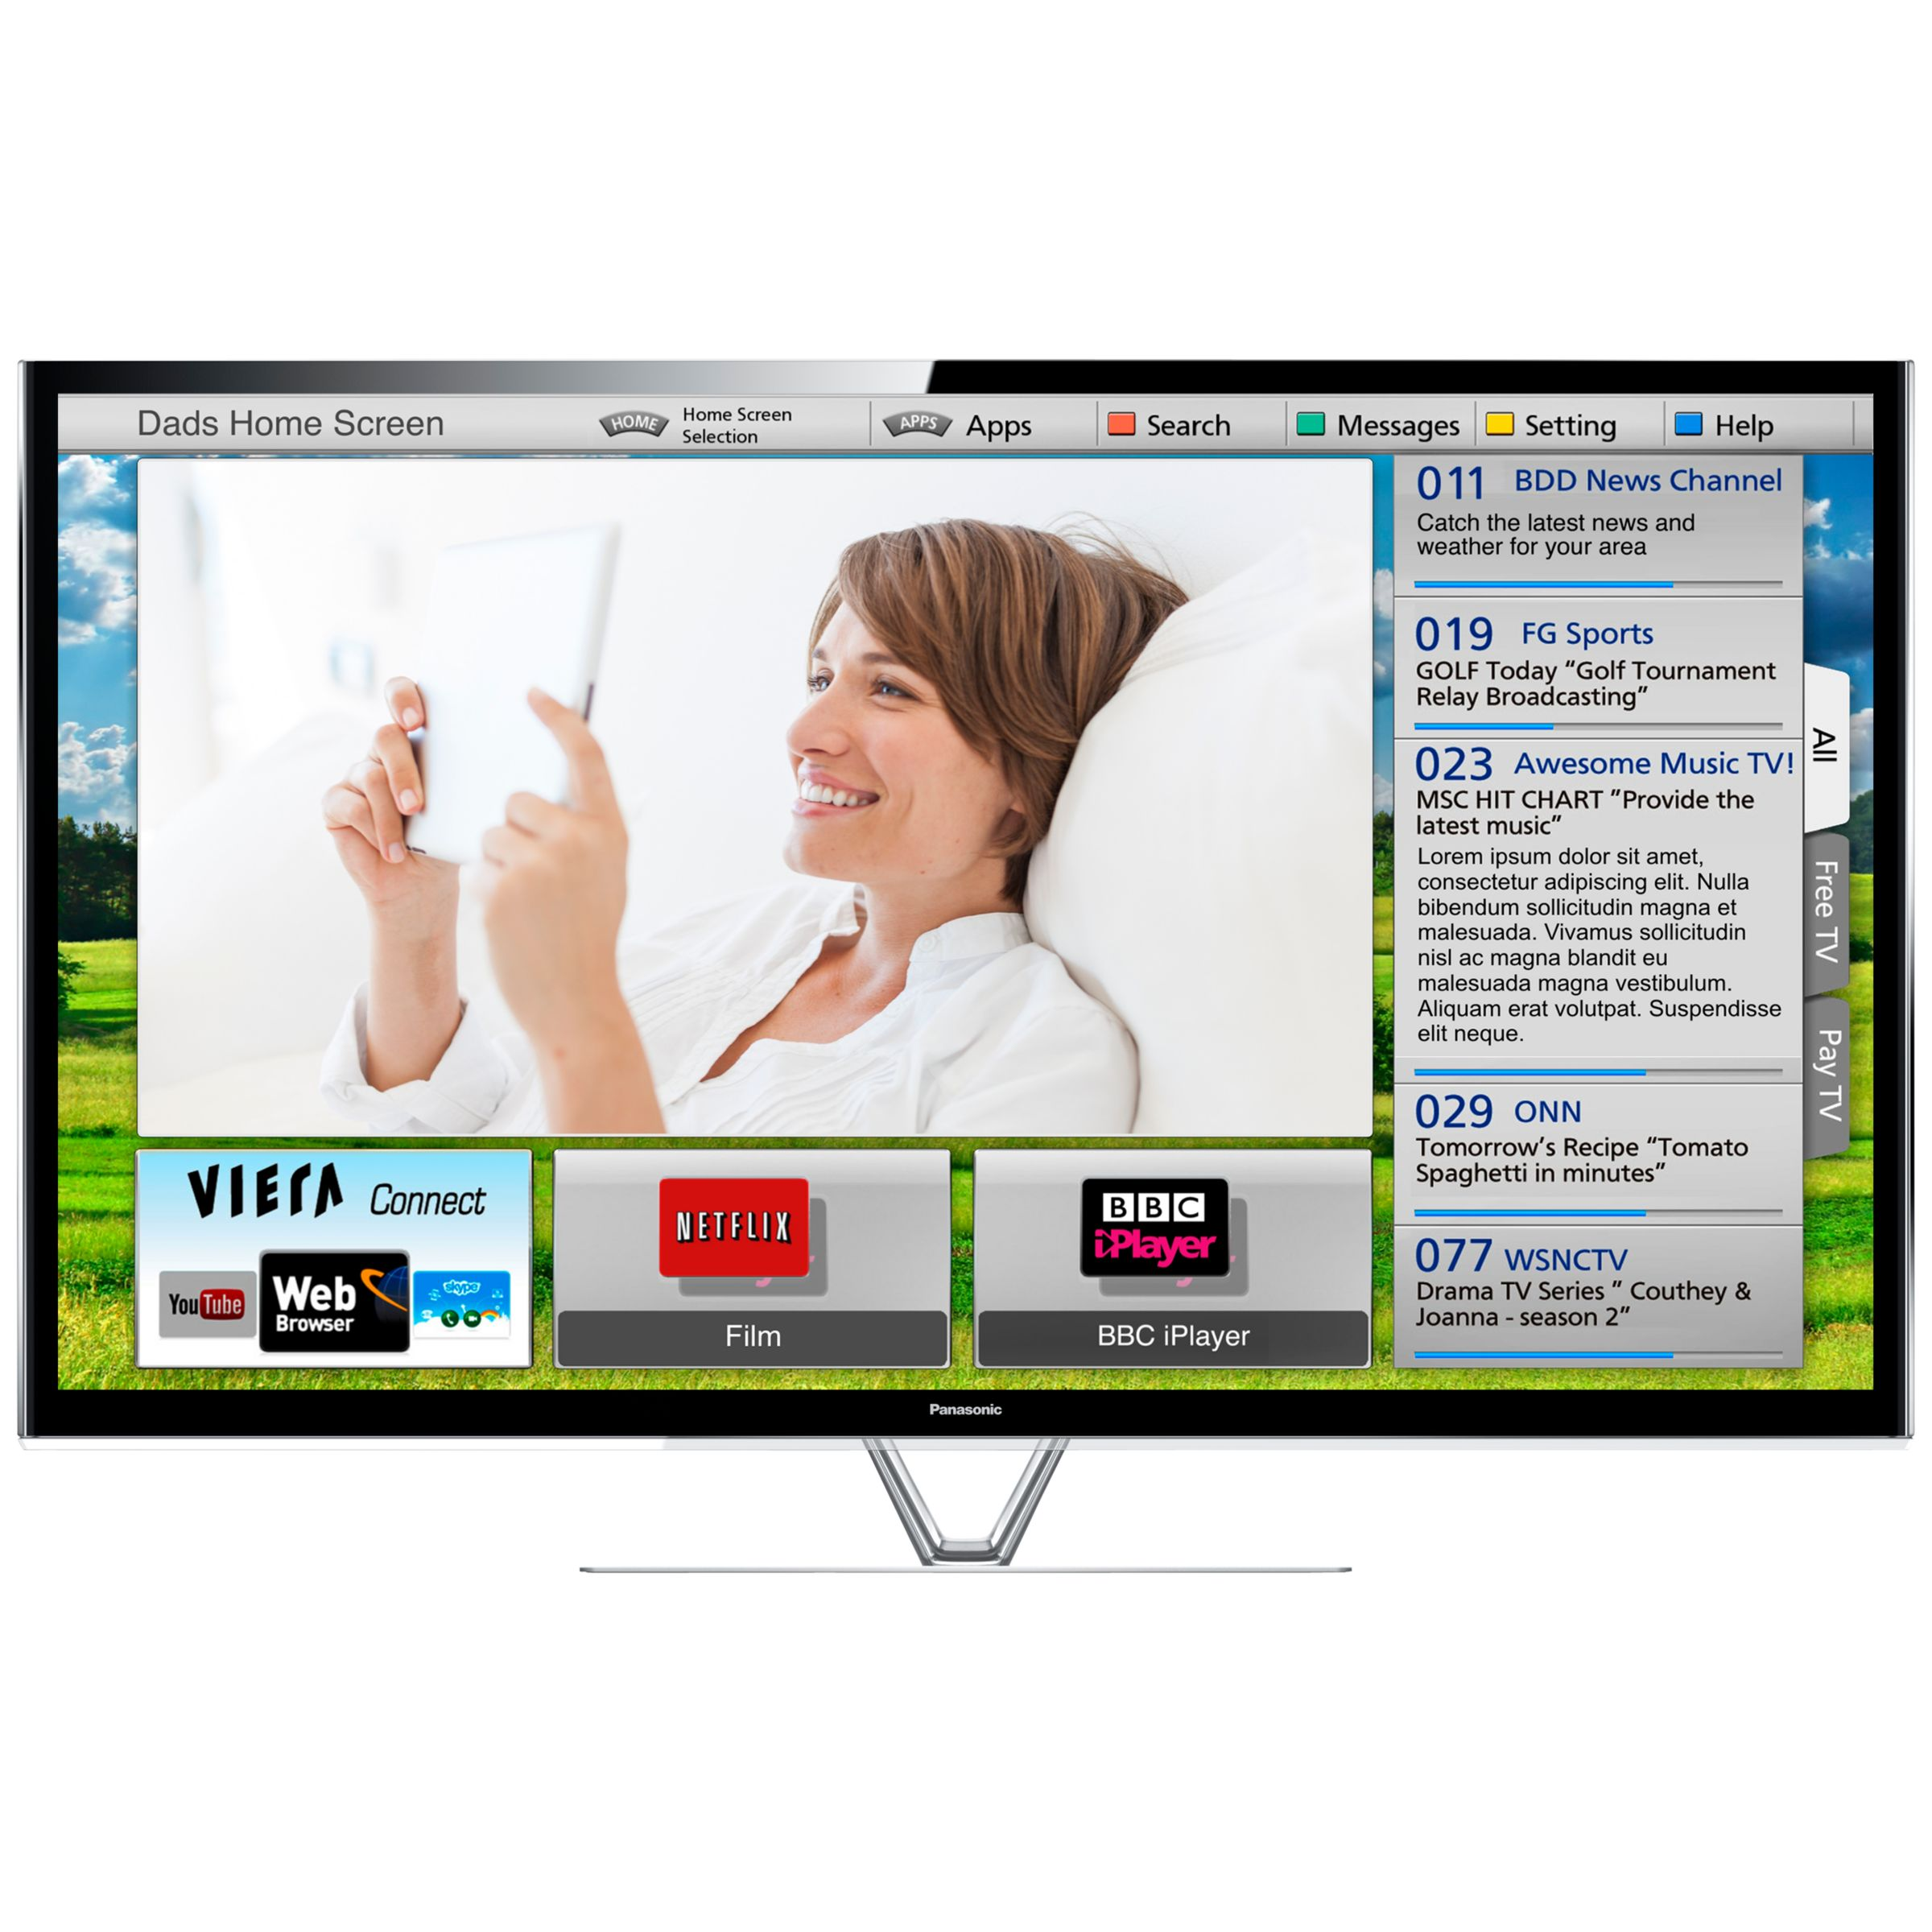 Panasonic Viera TXP65VT65B Plasma HD 1080p 3D Smart TV 65&quot FreeviewFreesat HD and Voice Recognition with 2x 3D Glasses